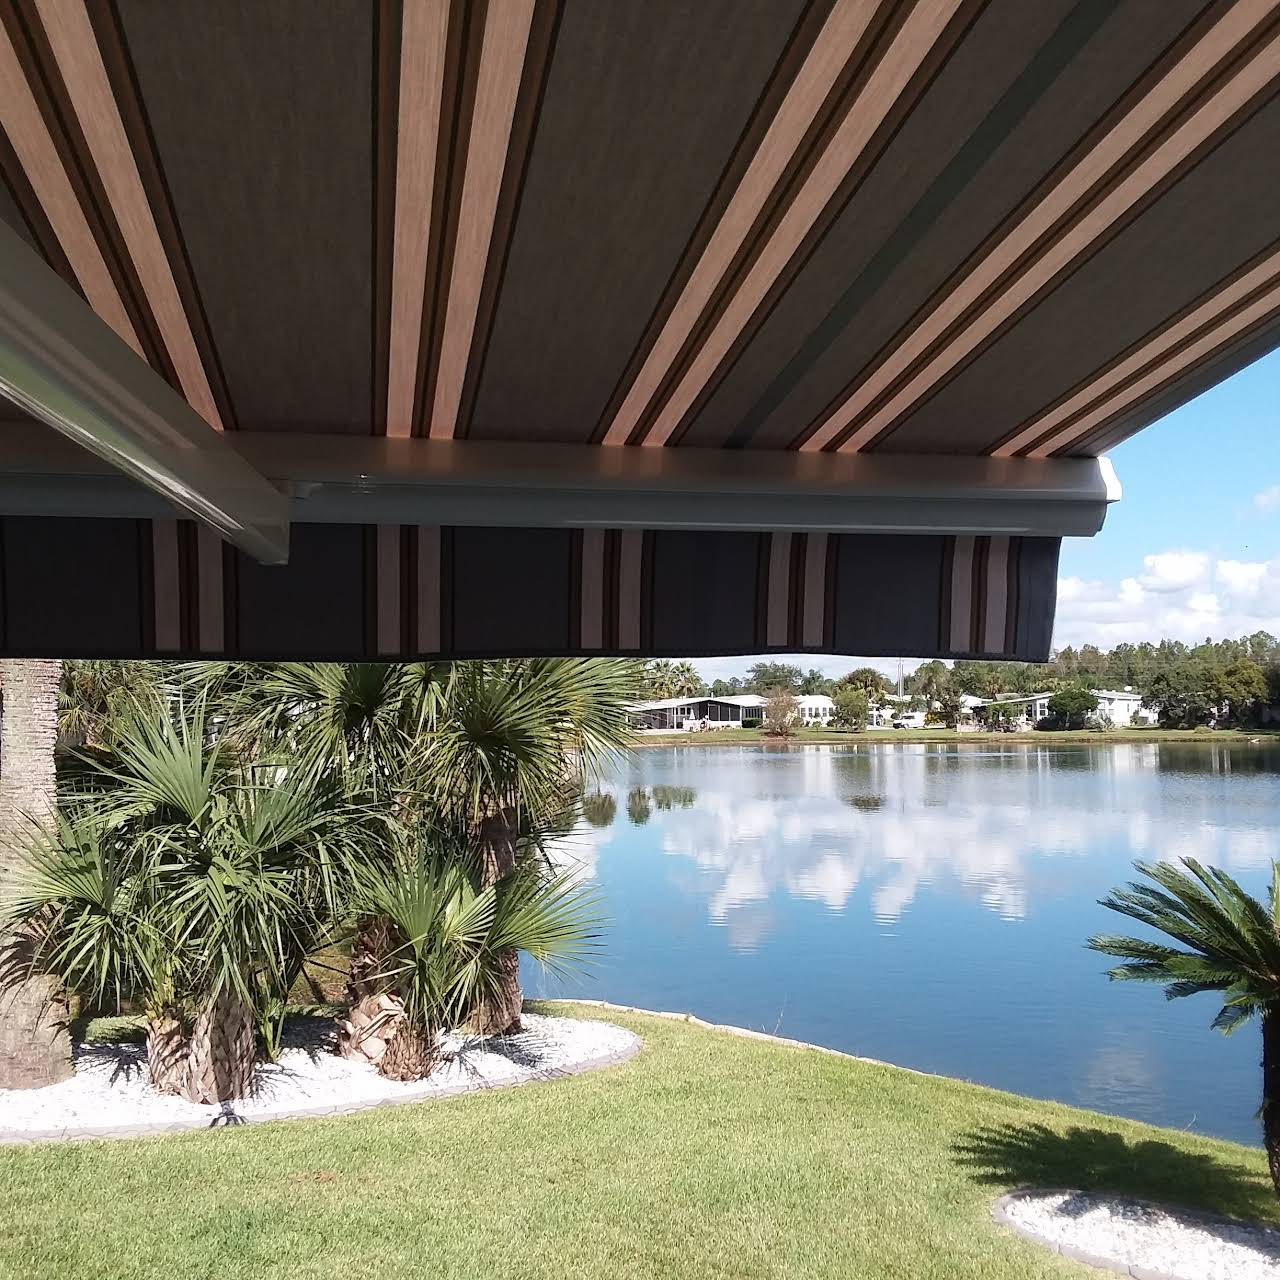 Shadetree Awnings of Florida LLC - Retractable Awning Supplier